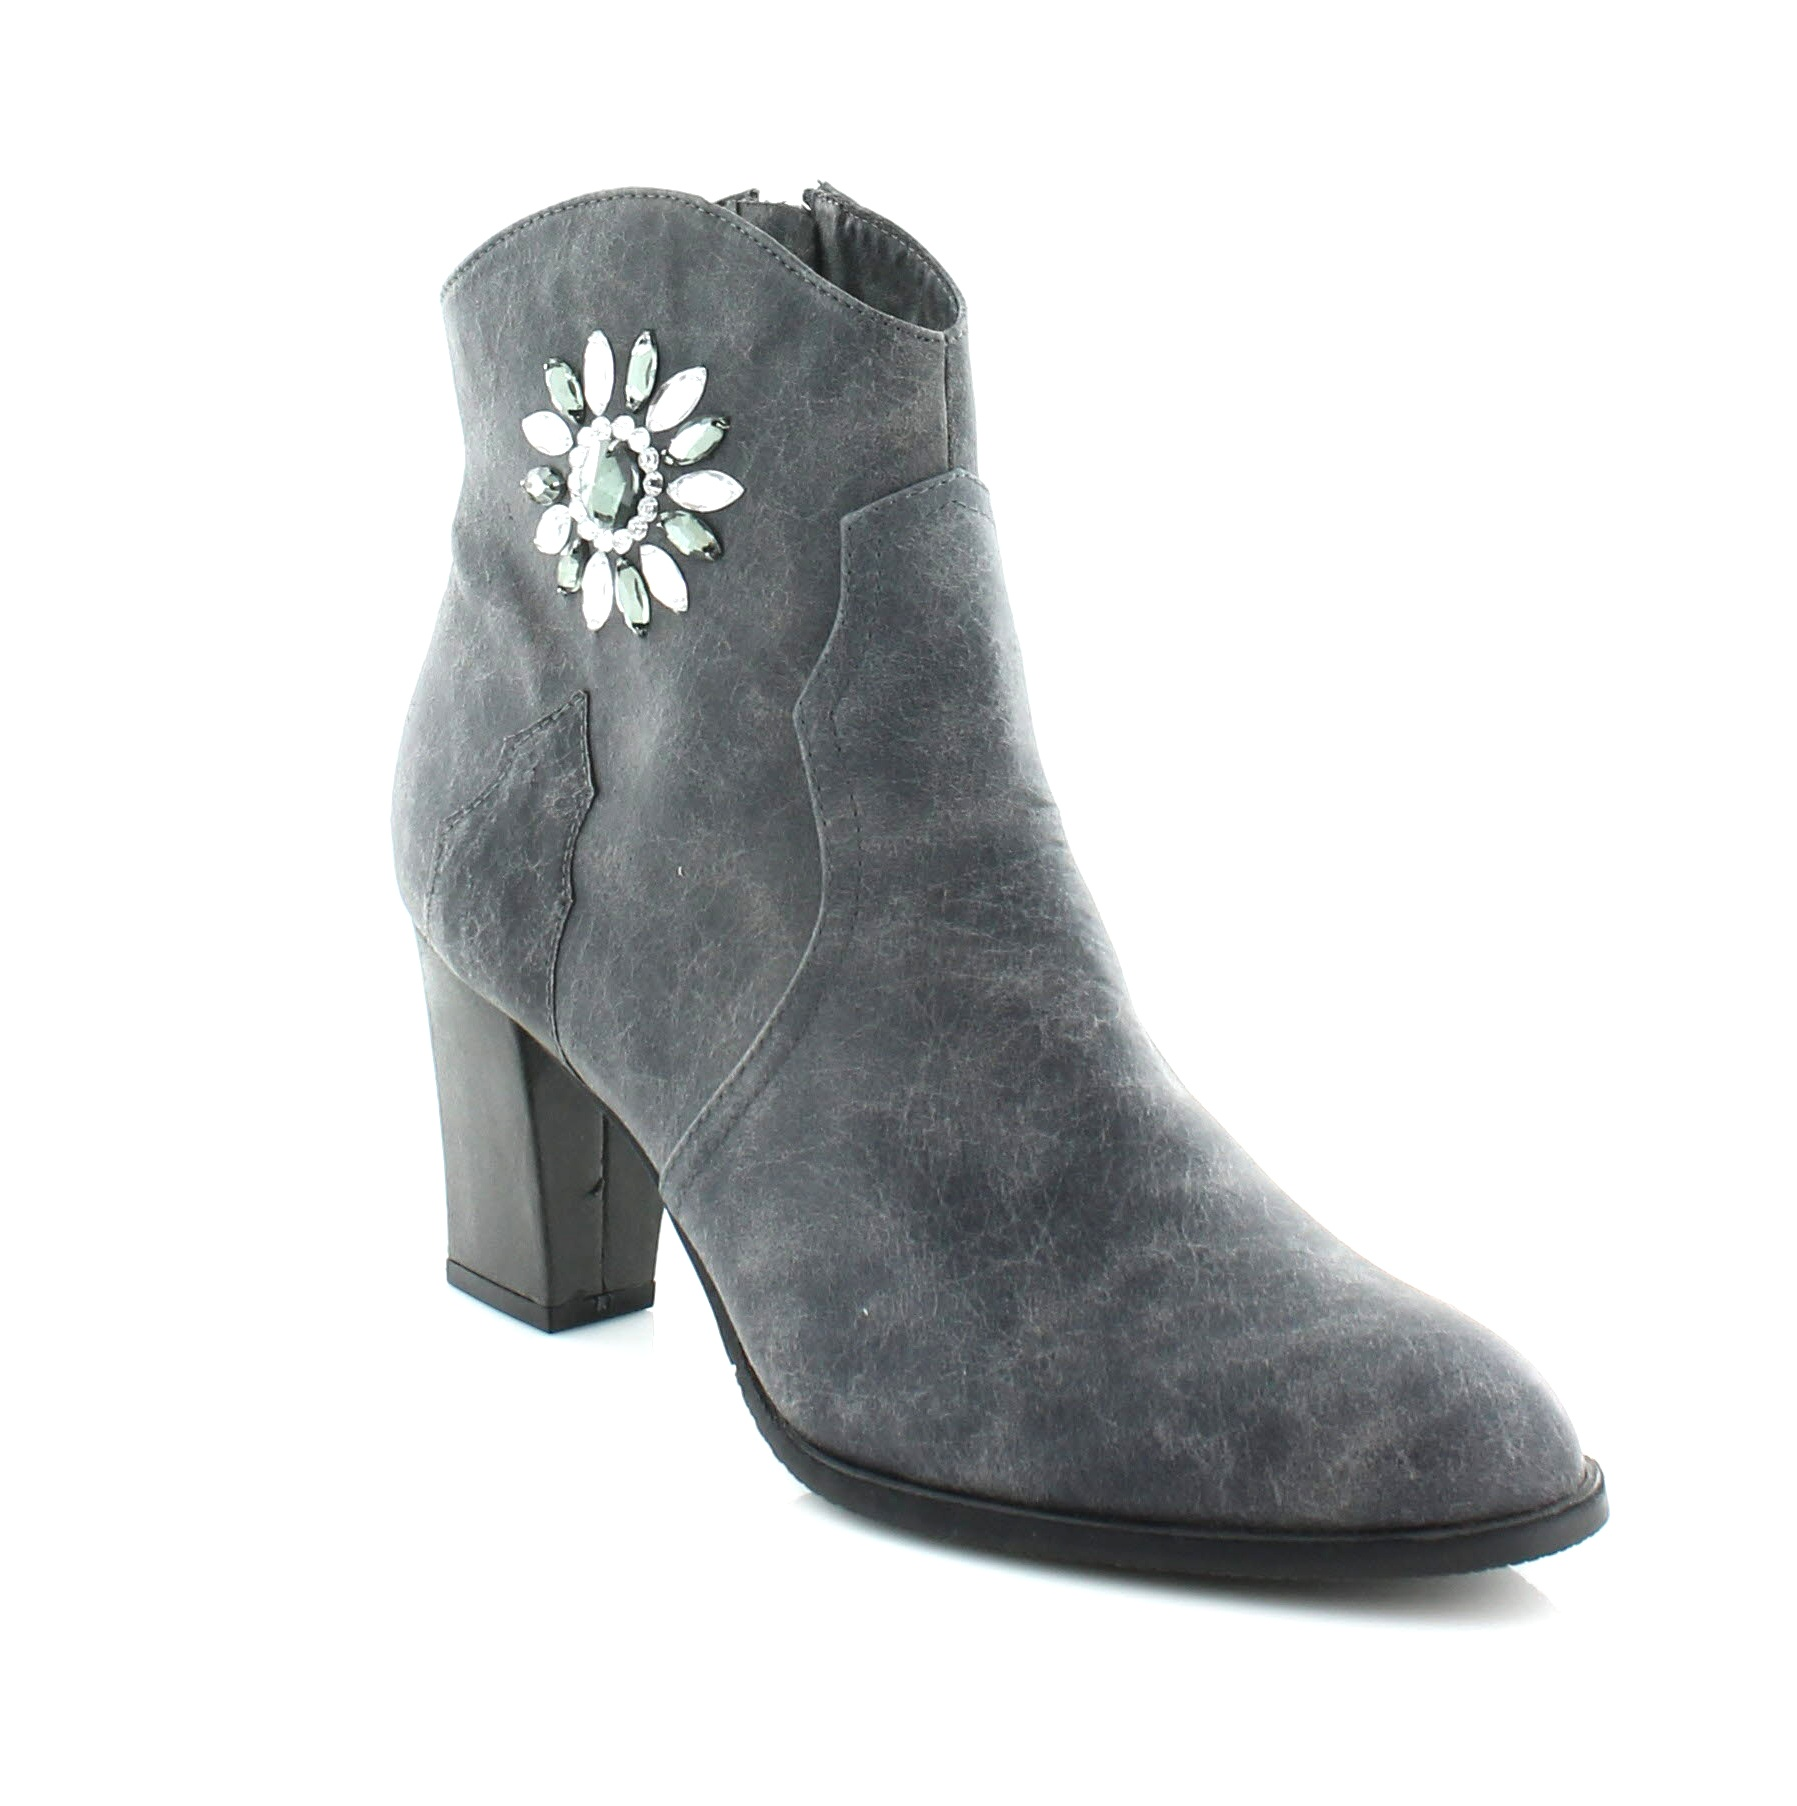 New York Transit Most Right Women's Boots